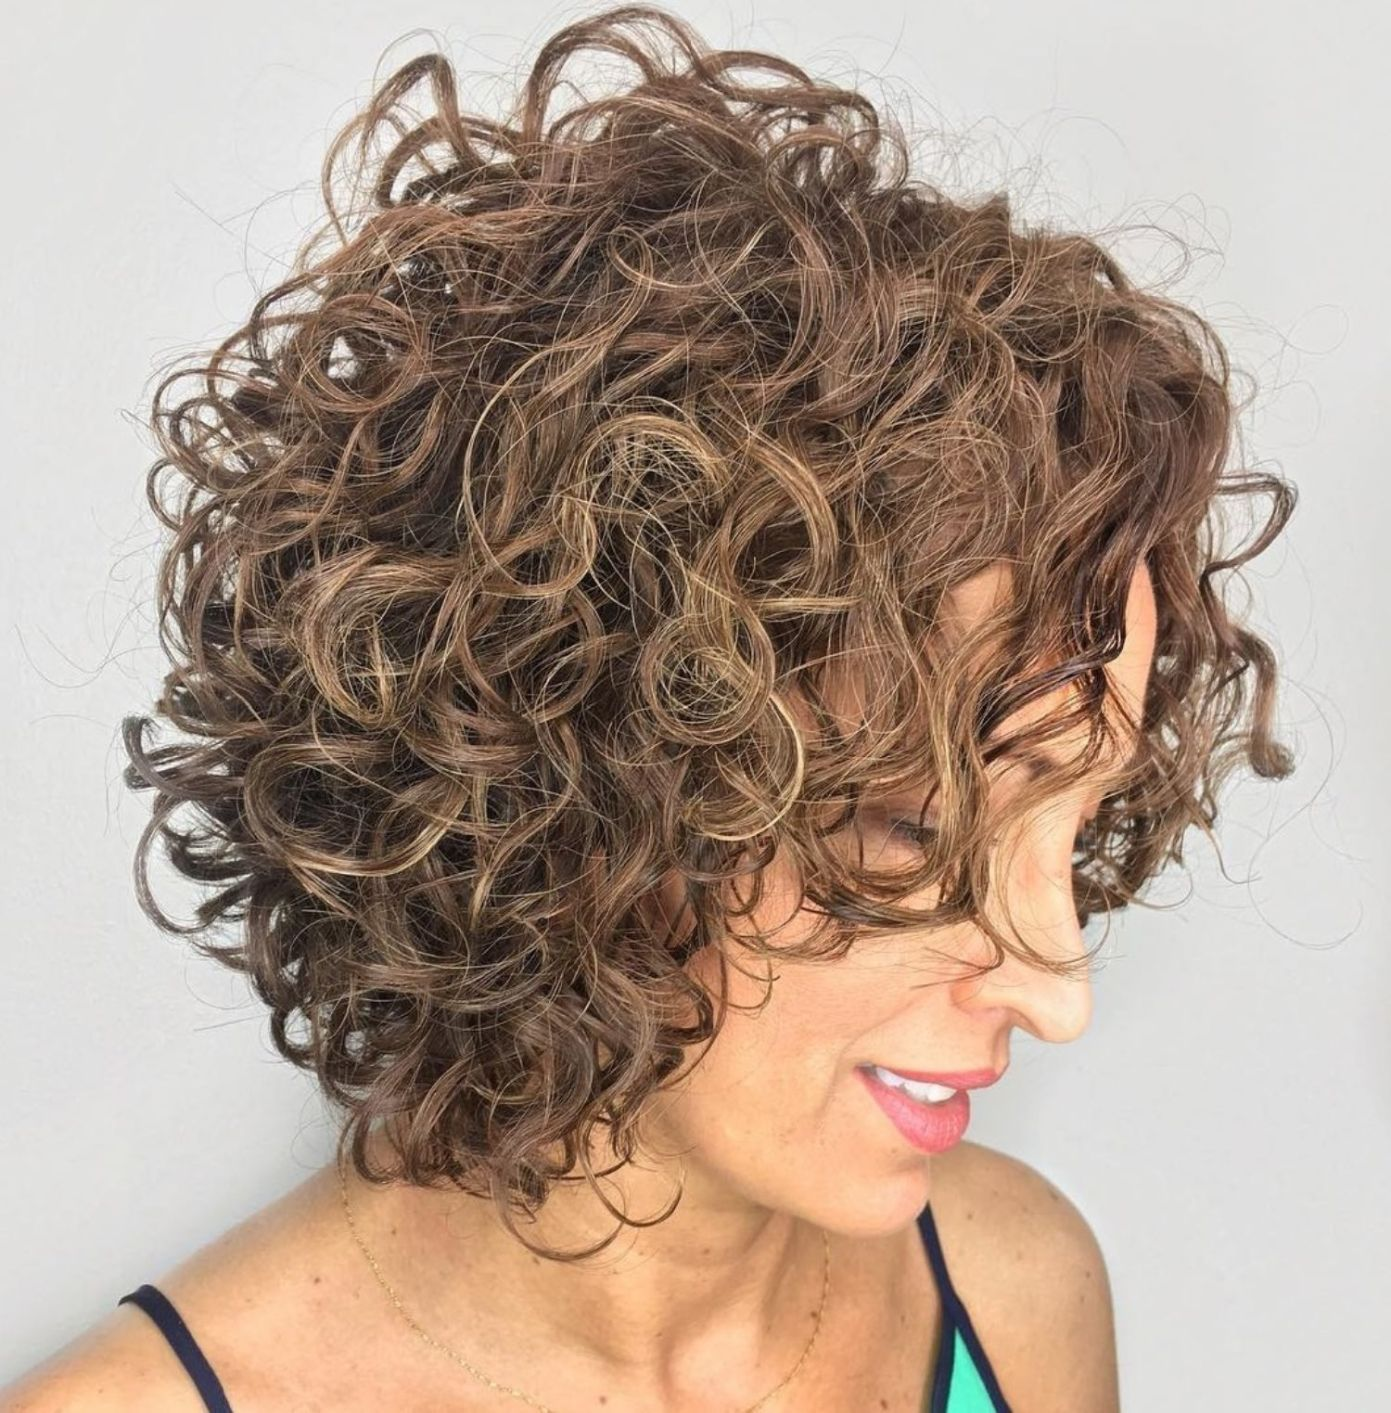 65 Different Versions of Curly Bob Hairstyle   Curly bob hairstyles, Bob hairstyles, Curly bob